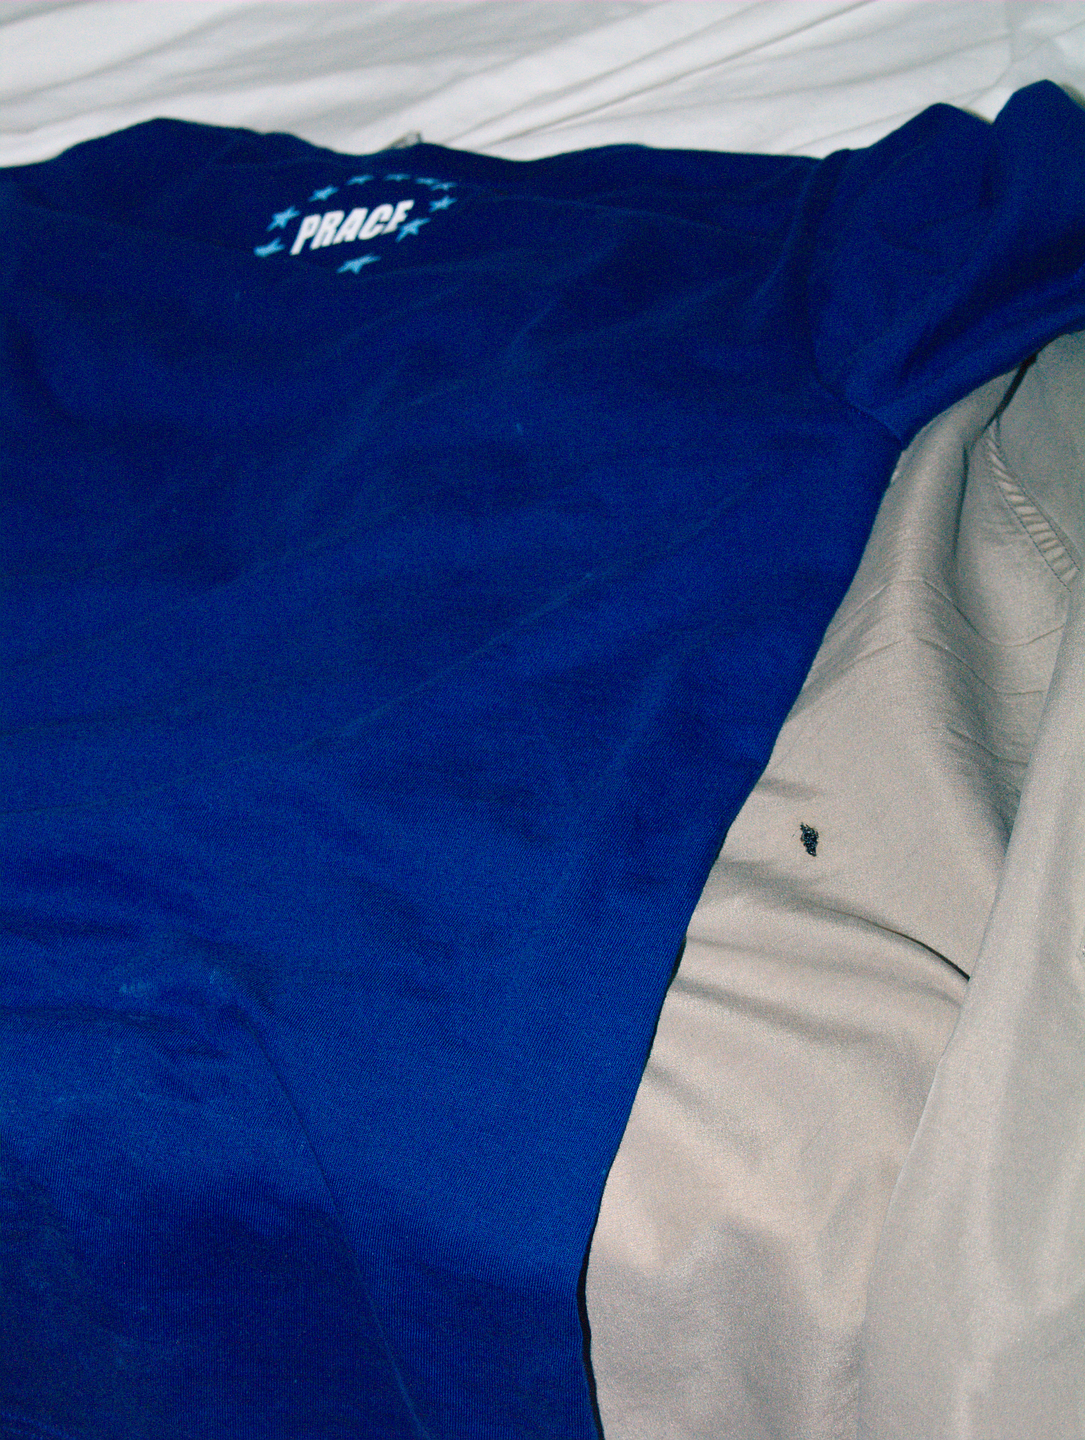 PRACE shirt and shorts after fireworks.